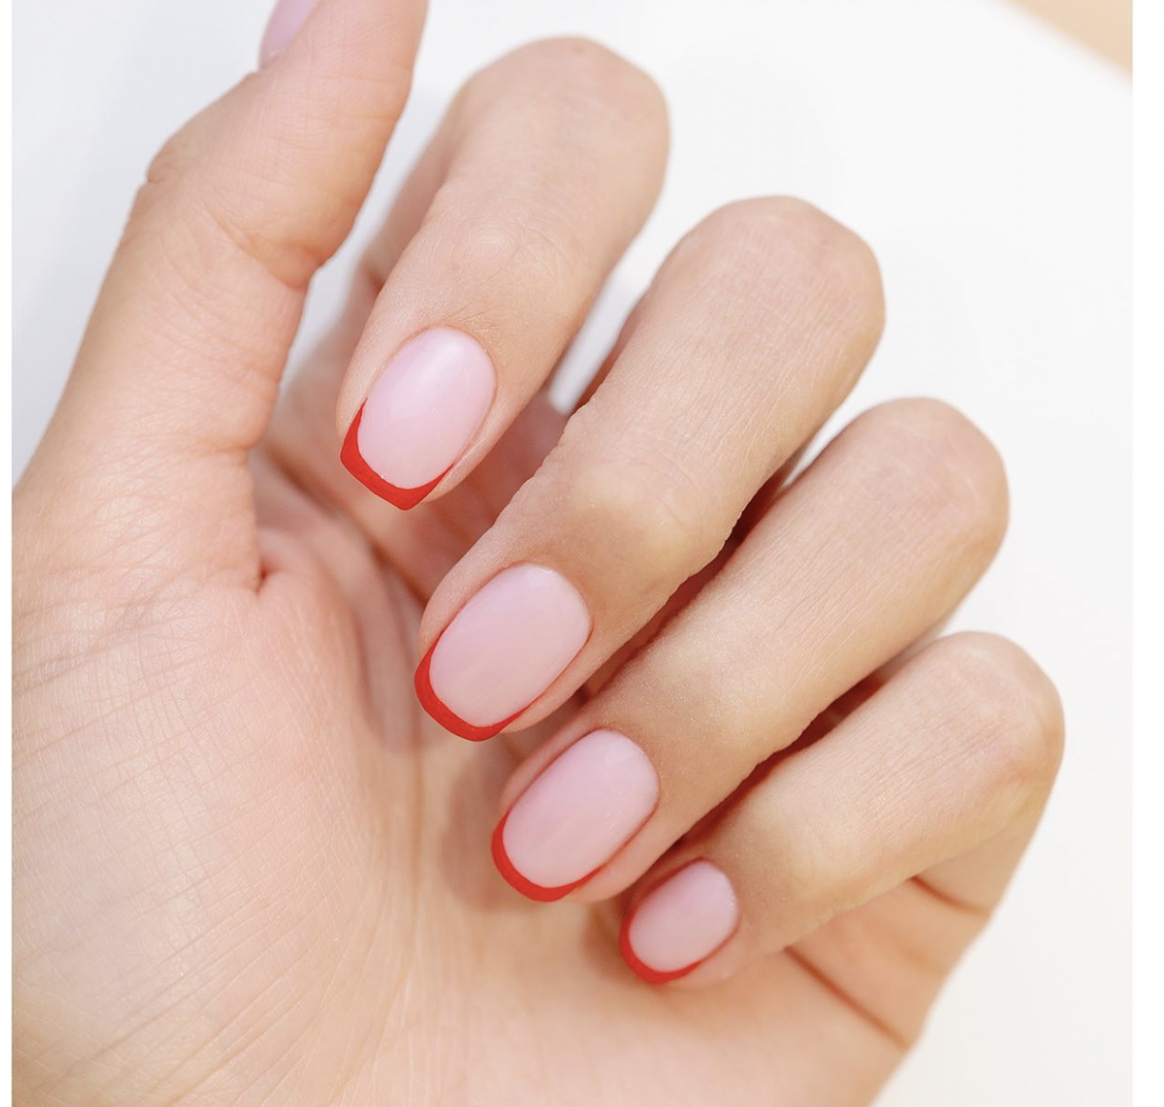 Colored French Manicure (Summer Nail Trend) - Love Daily Dose